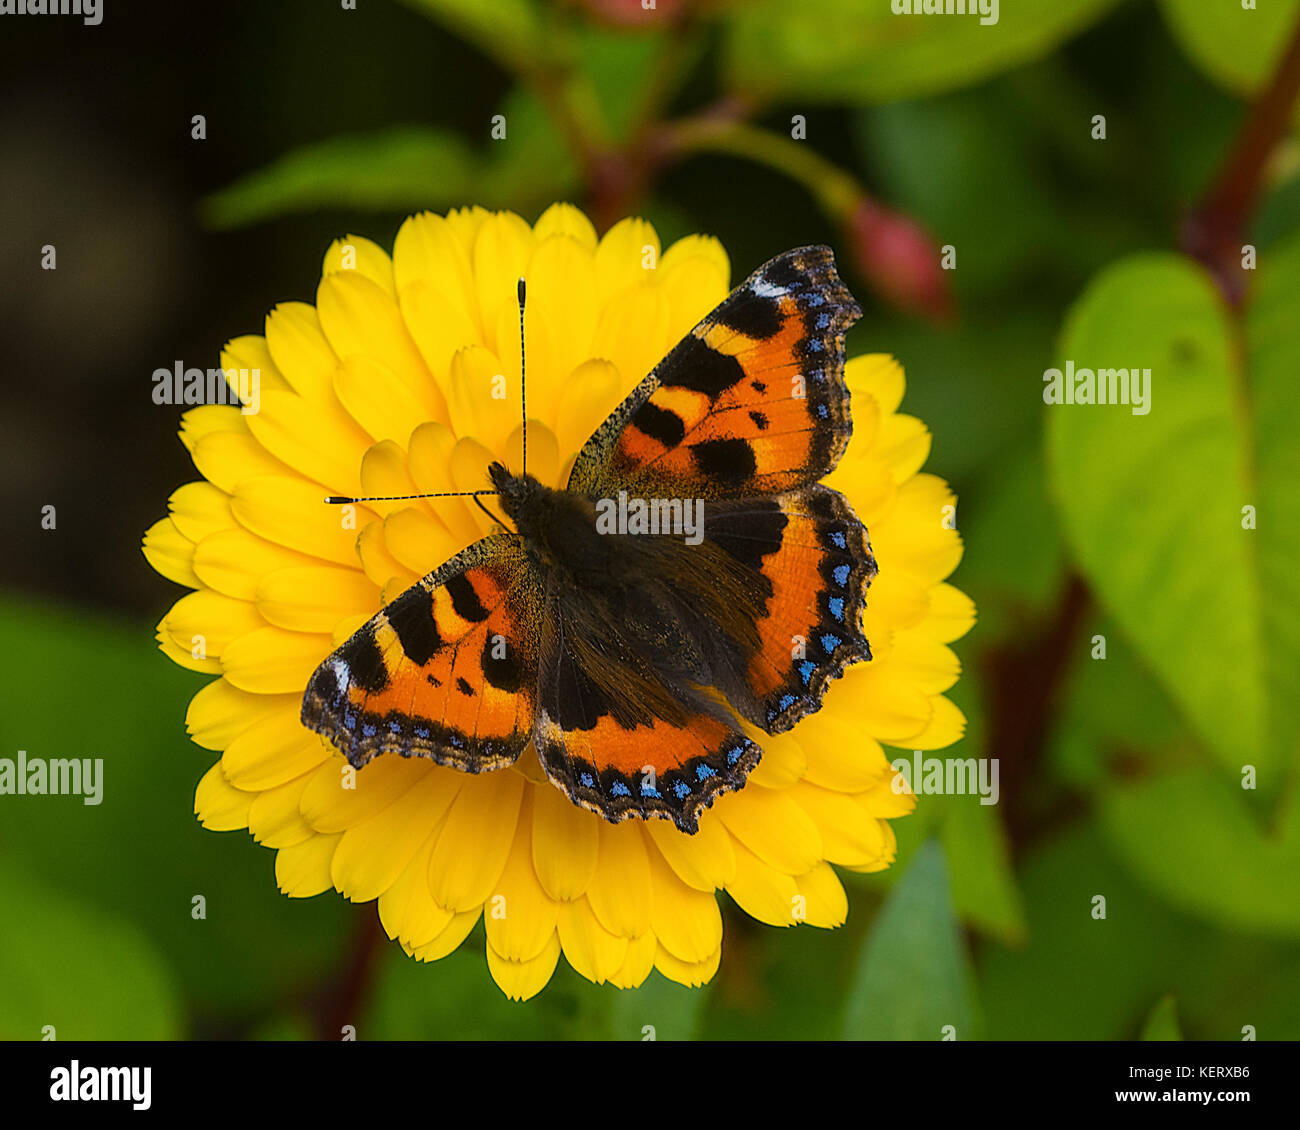 cut out image of a small tortoiseshell butterfly Aglais urticae on a calendula flower - Stock Image